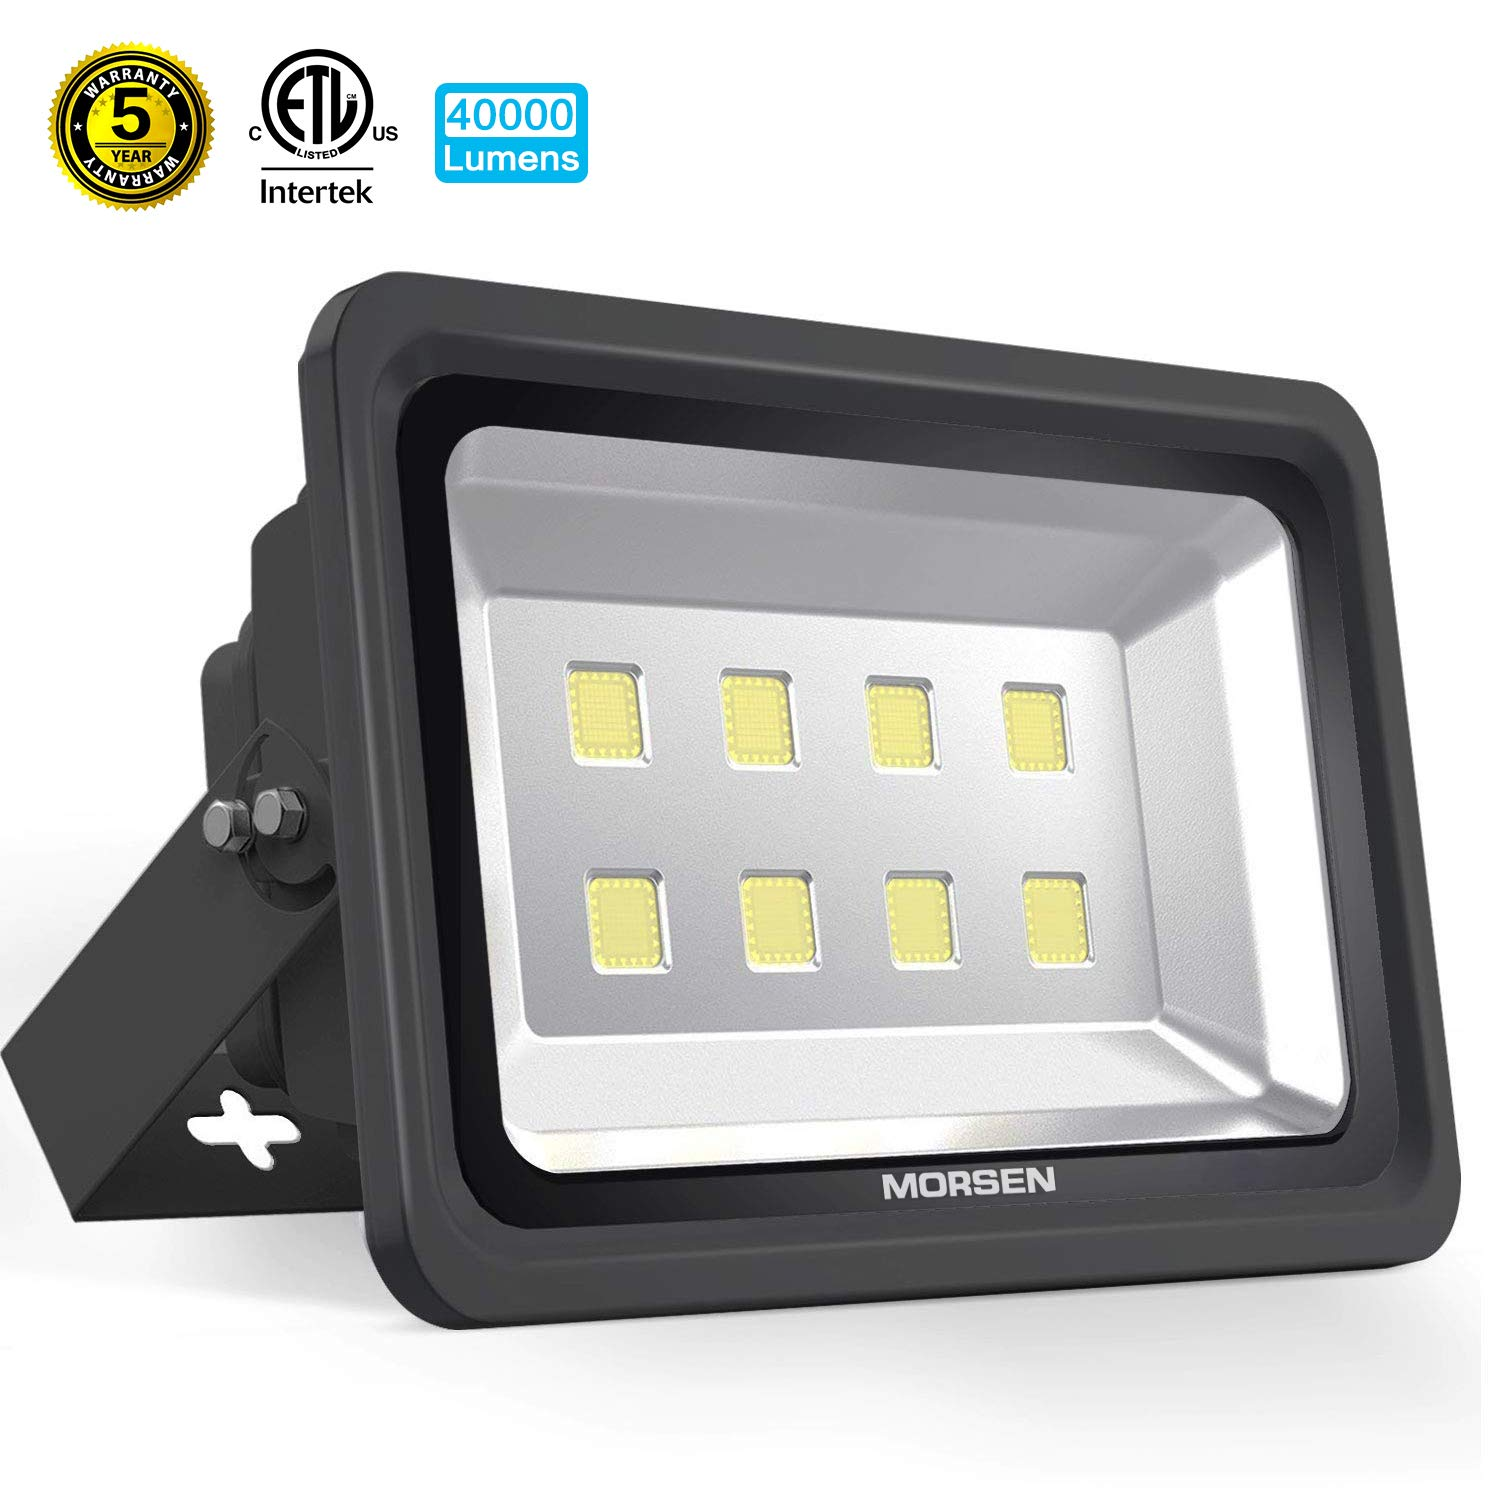 Morsen LED Flood Light 400W, IP65 Waterproof Indoor Outdoor 6000K Super Bright Security Wall Light for Garden, Basketball Football Court, Parking Lot, Playground, Lanscape by MORSEN